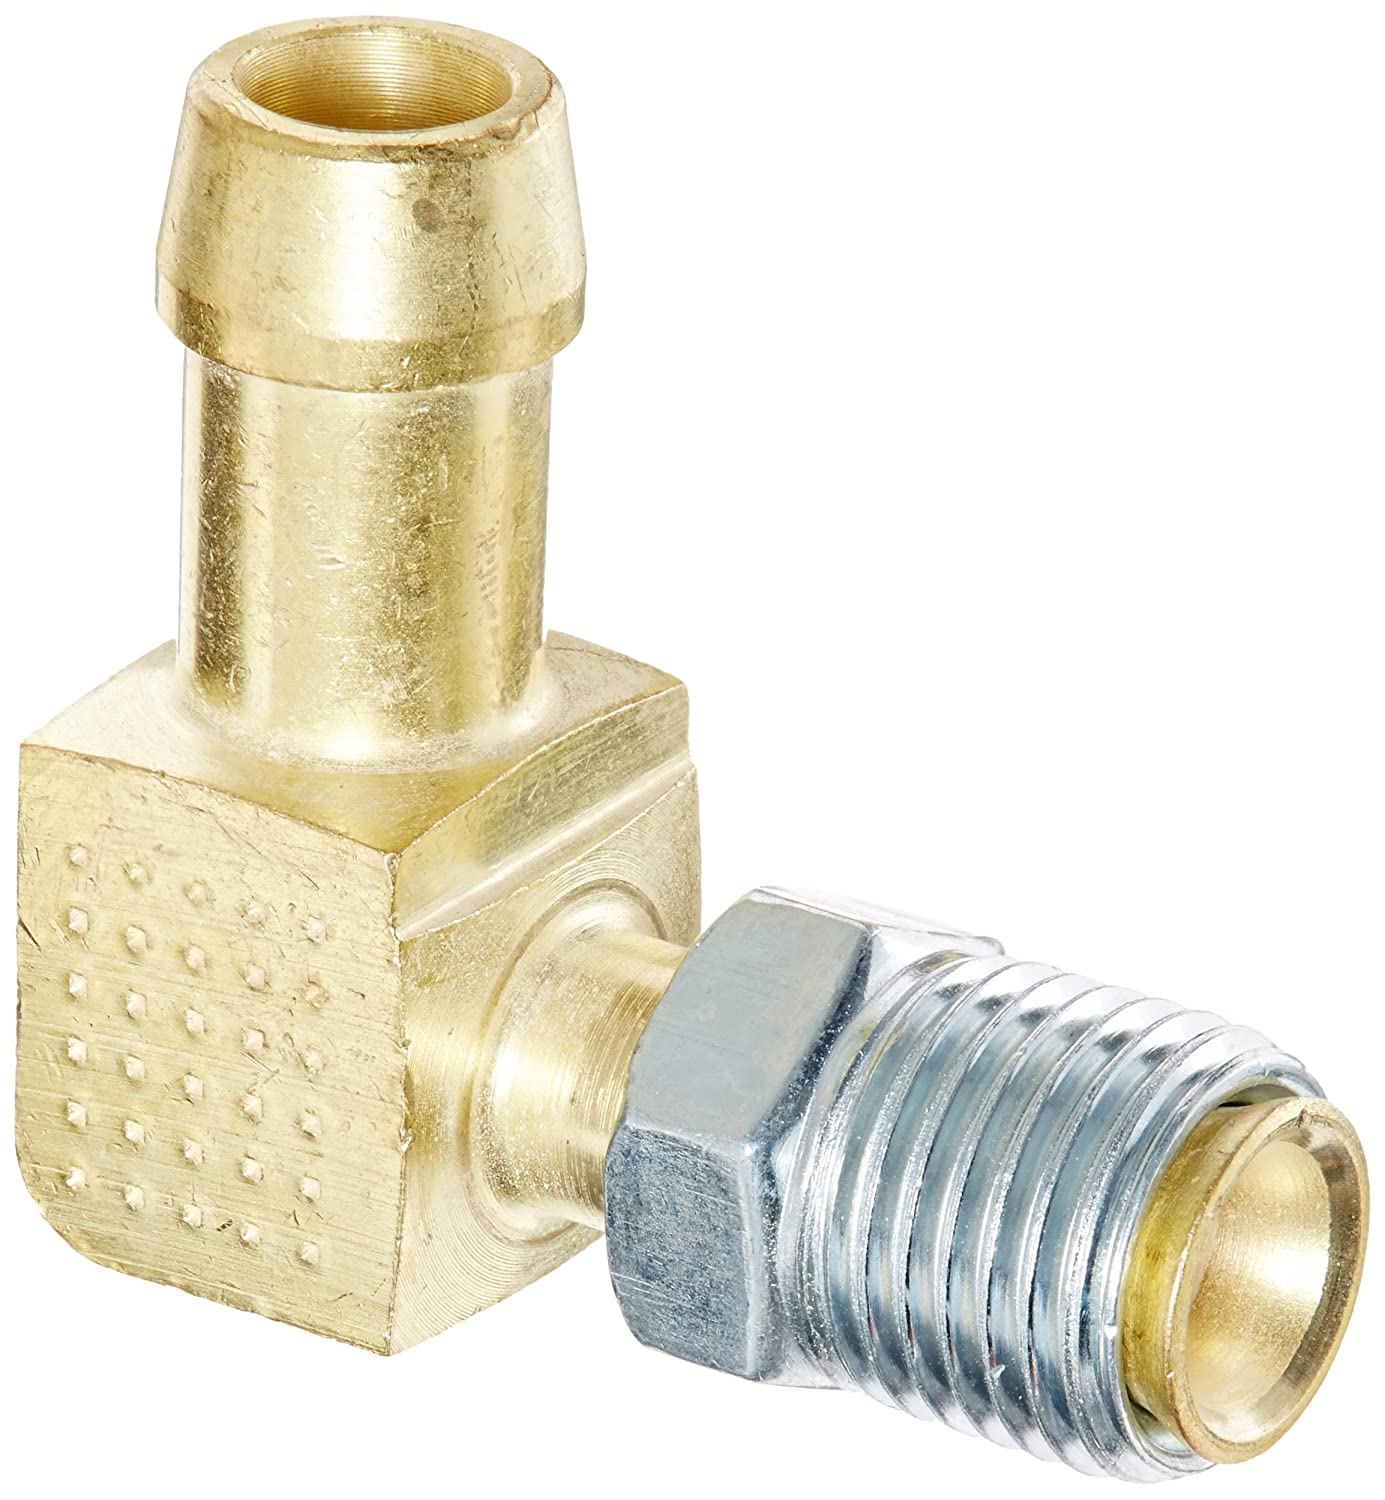 Edelmann 822560 Brass 5/16' Inverted Flare X 3/8' Hose 90 Degree Elbow Fitting EDL822560